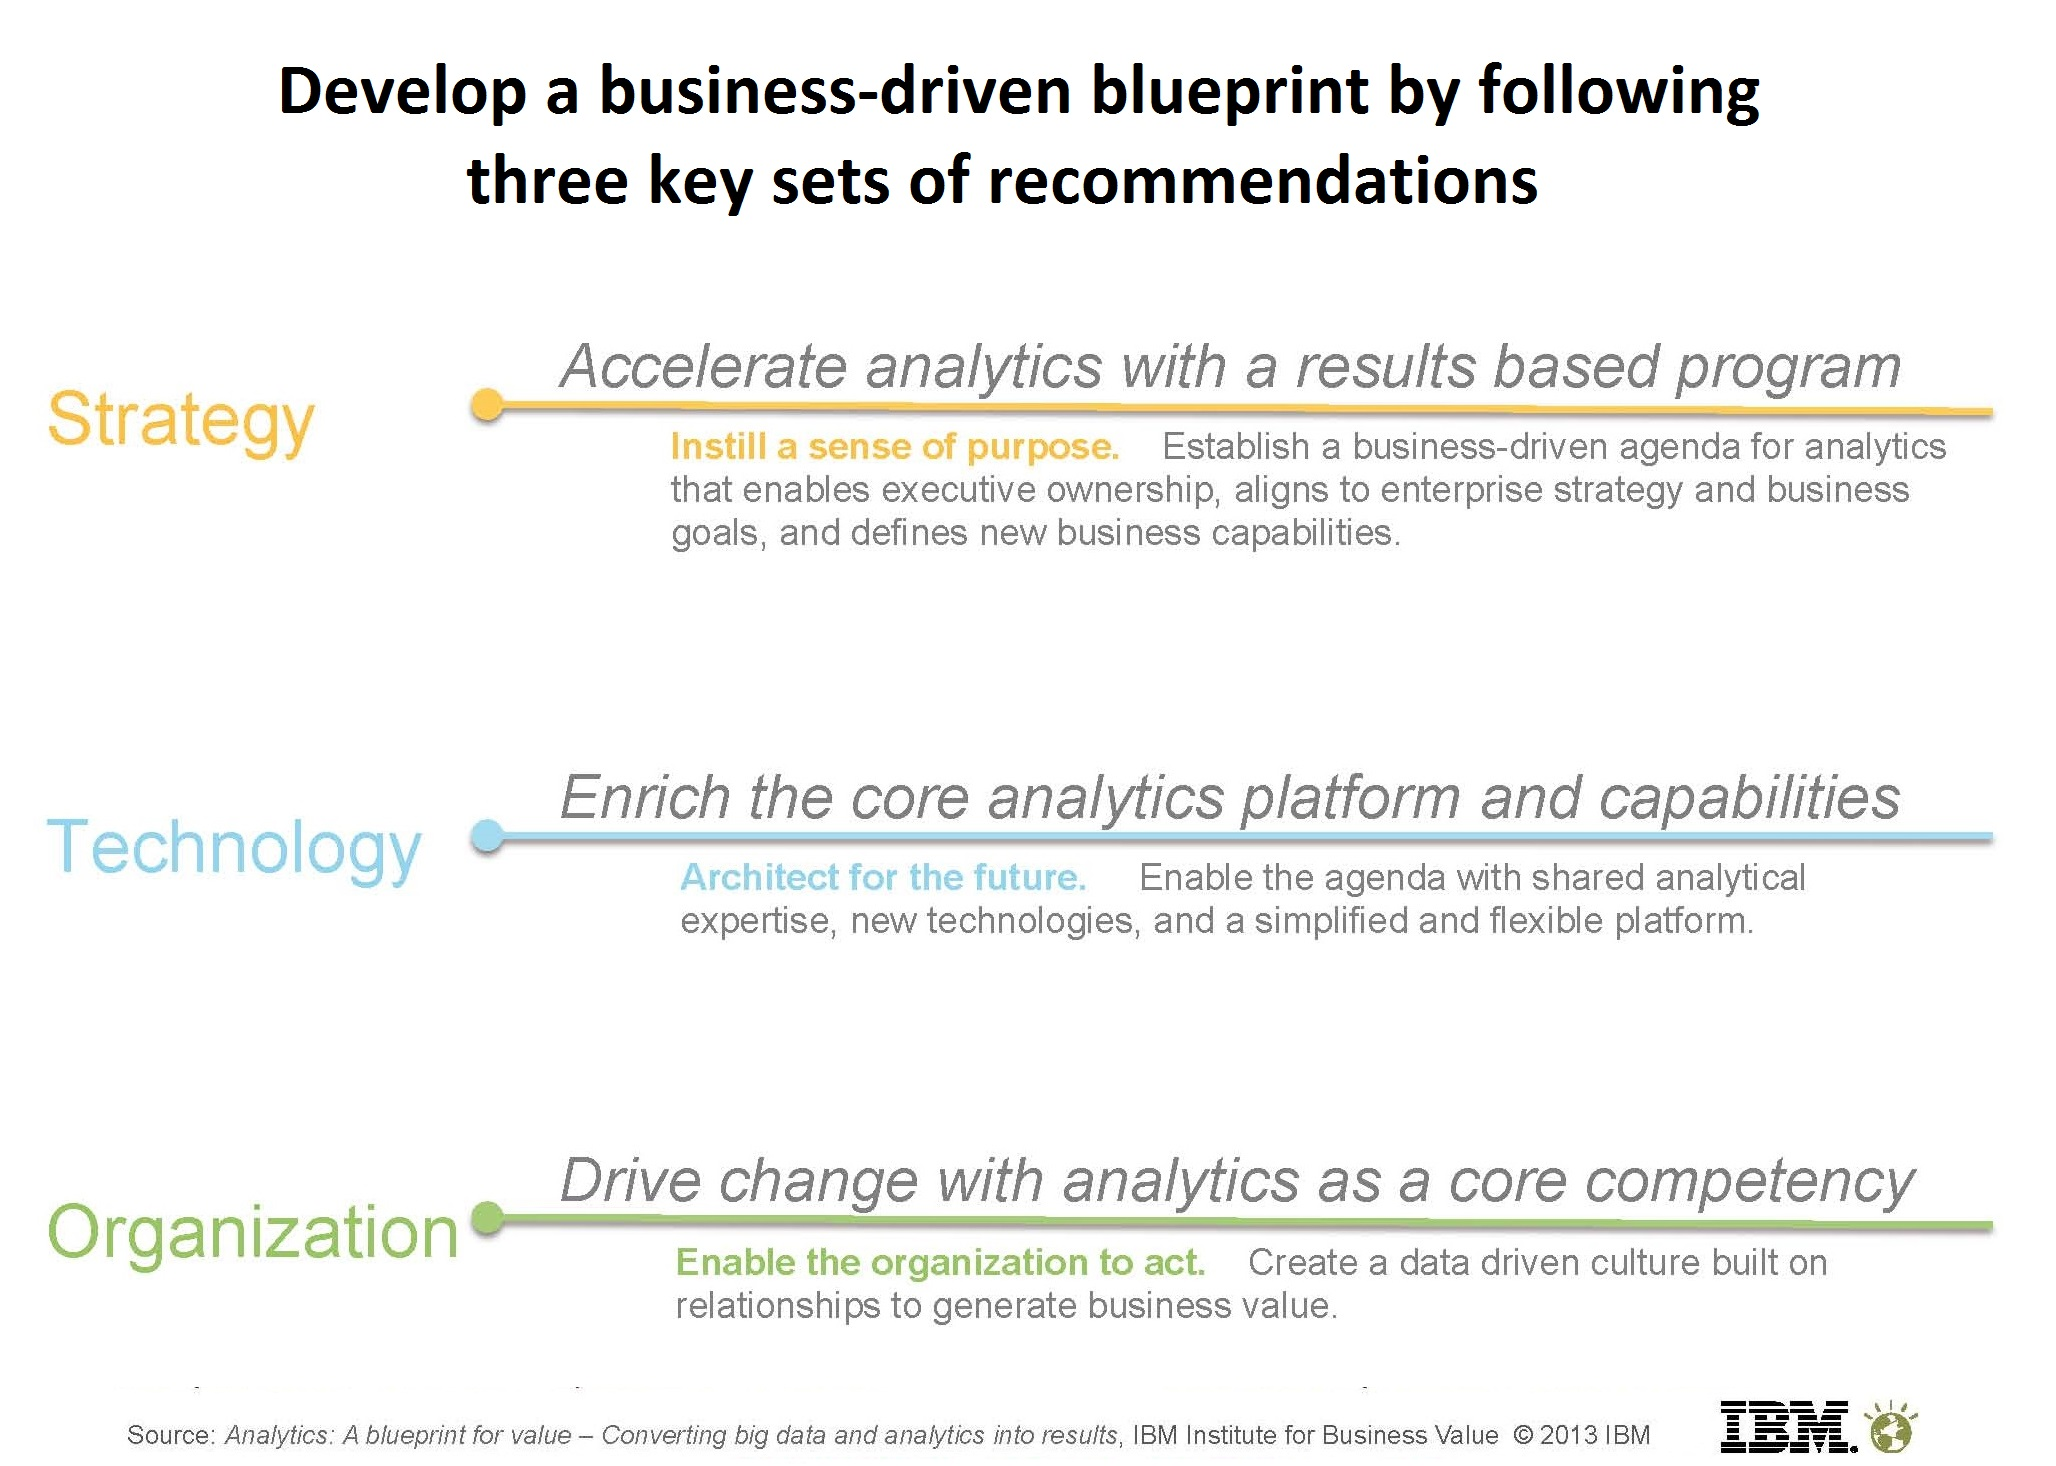 Creating value from analytics the nine levers of success analytics blueprint for creating value from data click image to enlarge malvernweather Choice Image